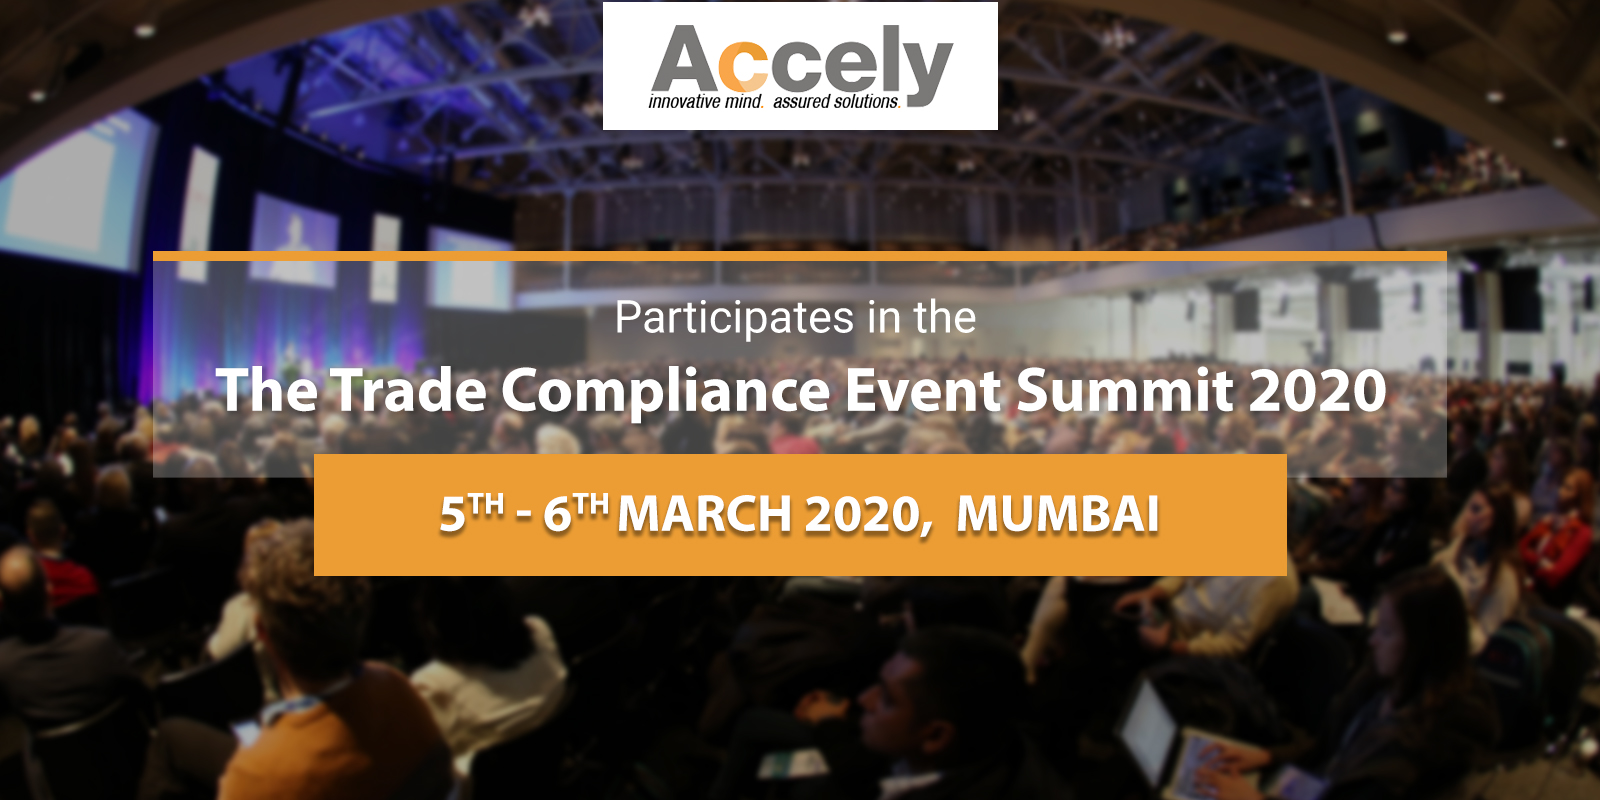 Accely to Participate in the Biggest Trade Event The Trade Compliance Event Summit 2020